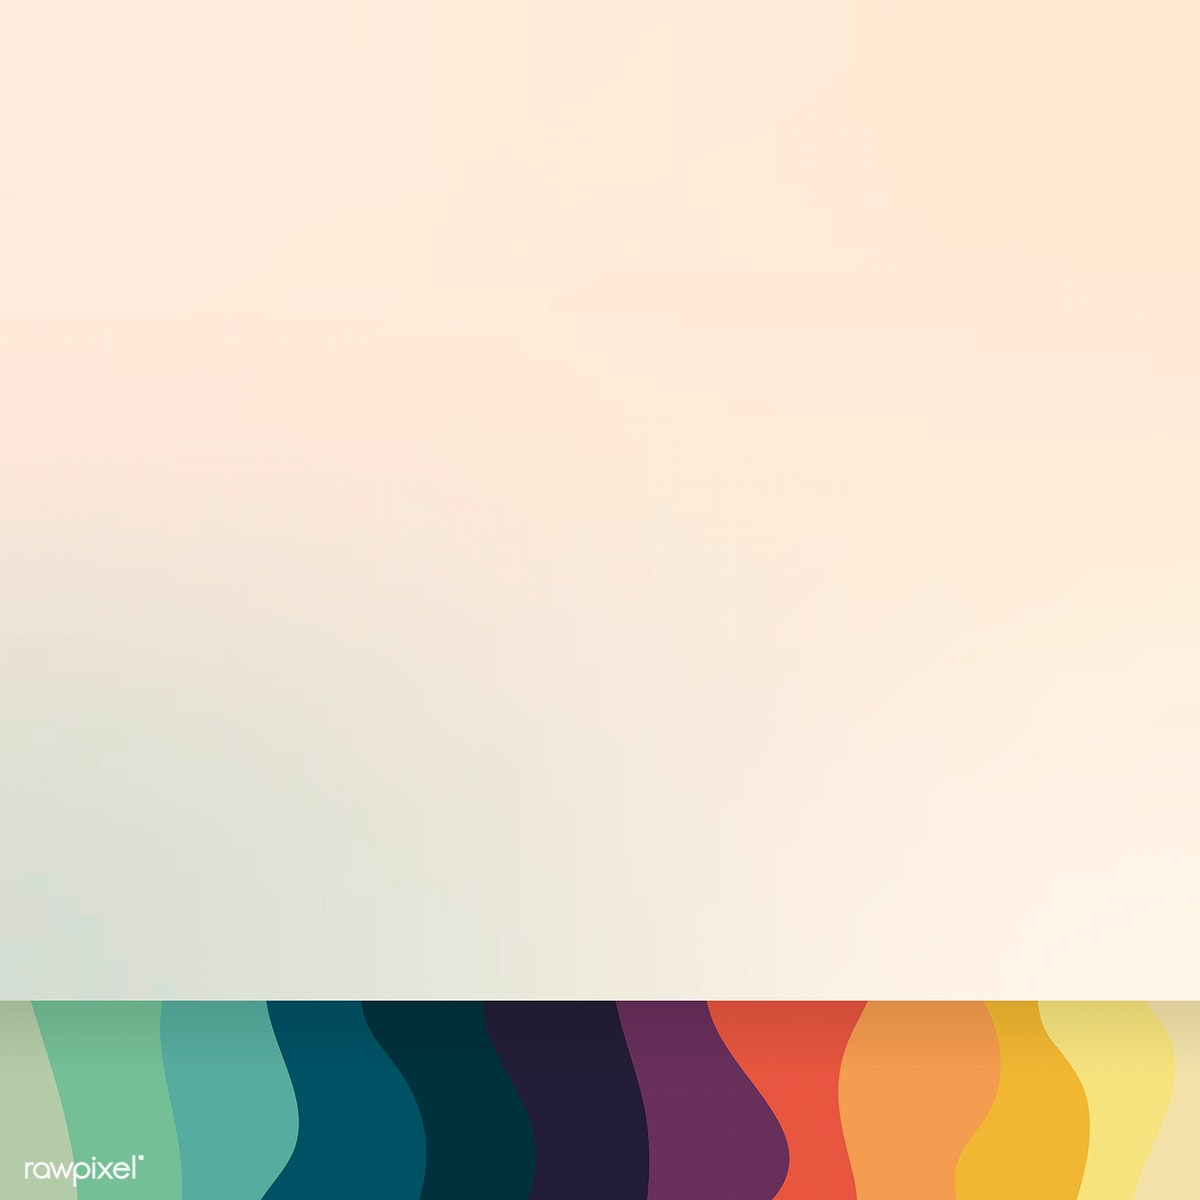 Download premium image of Mockup colorful wave pattern background vector